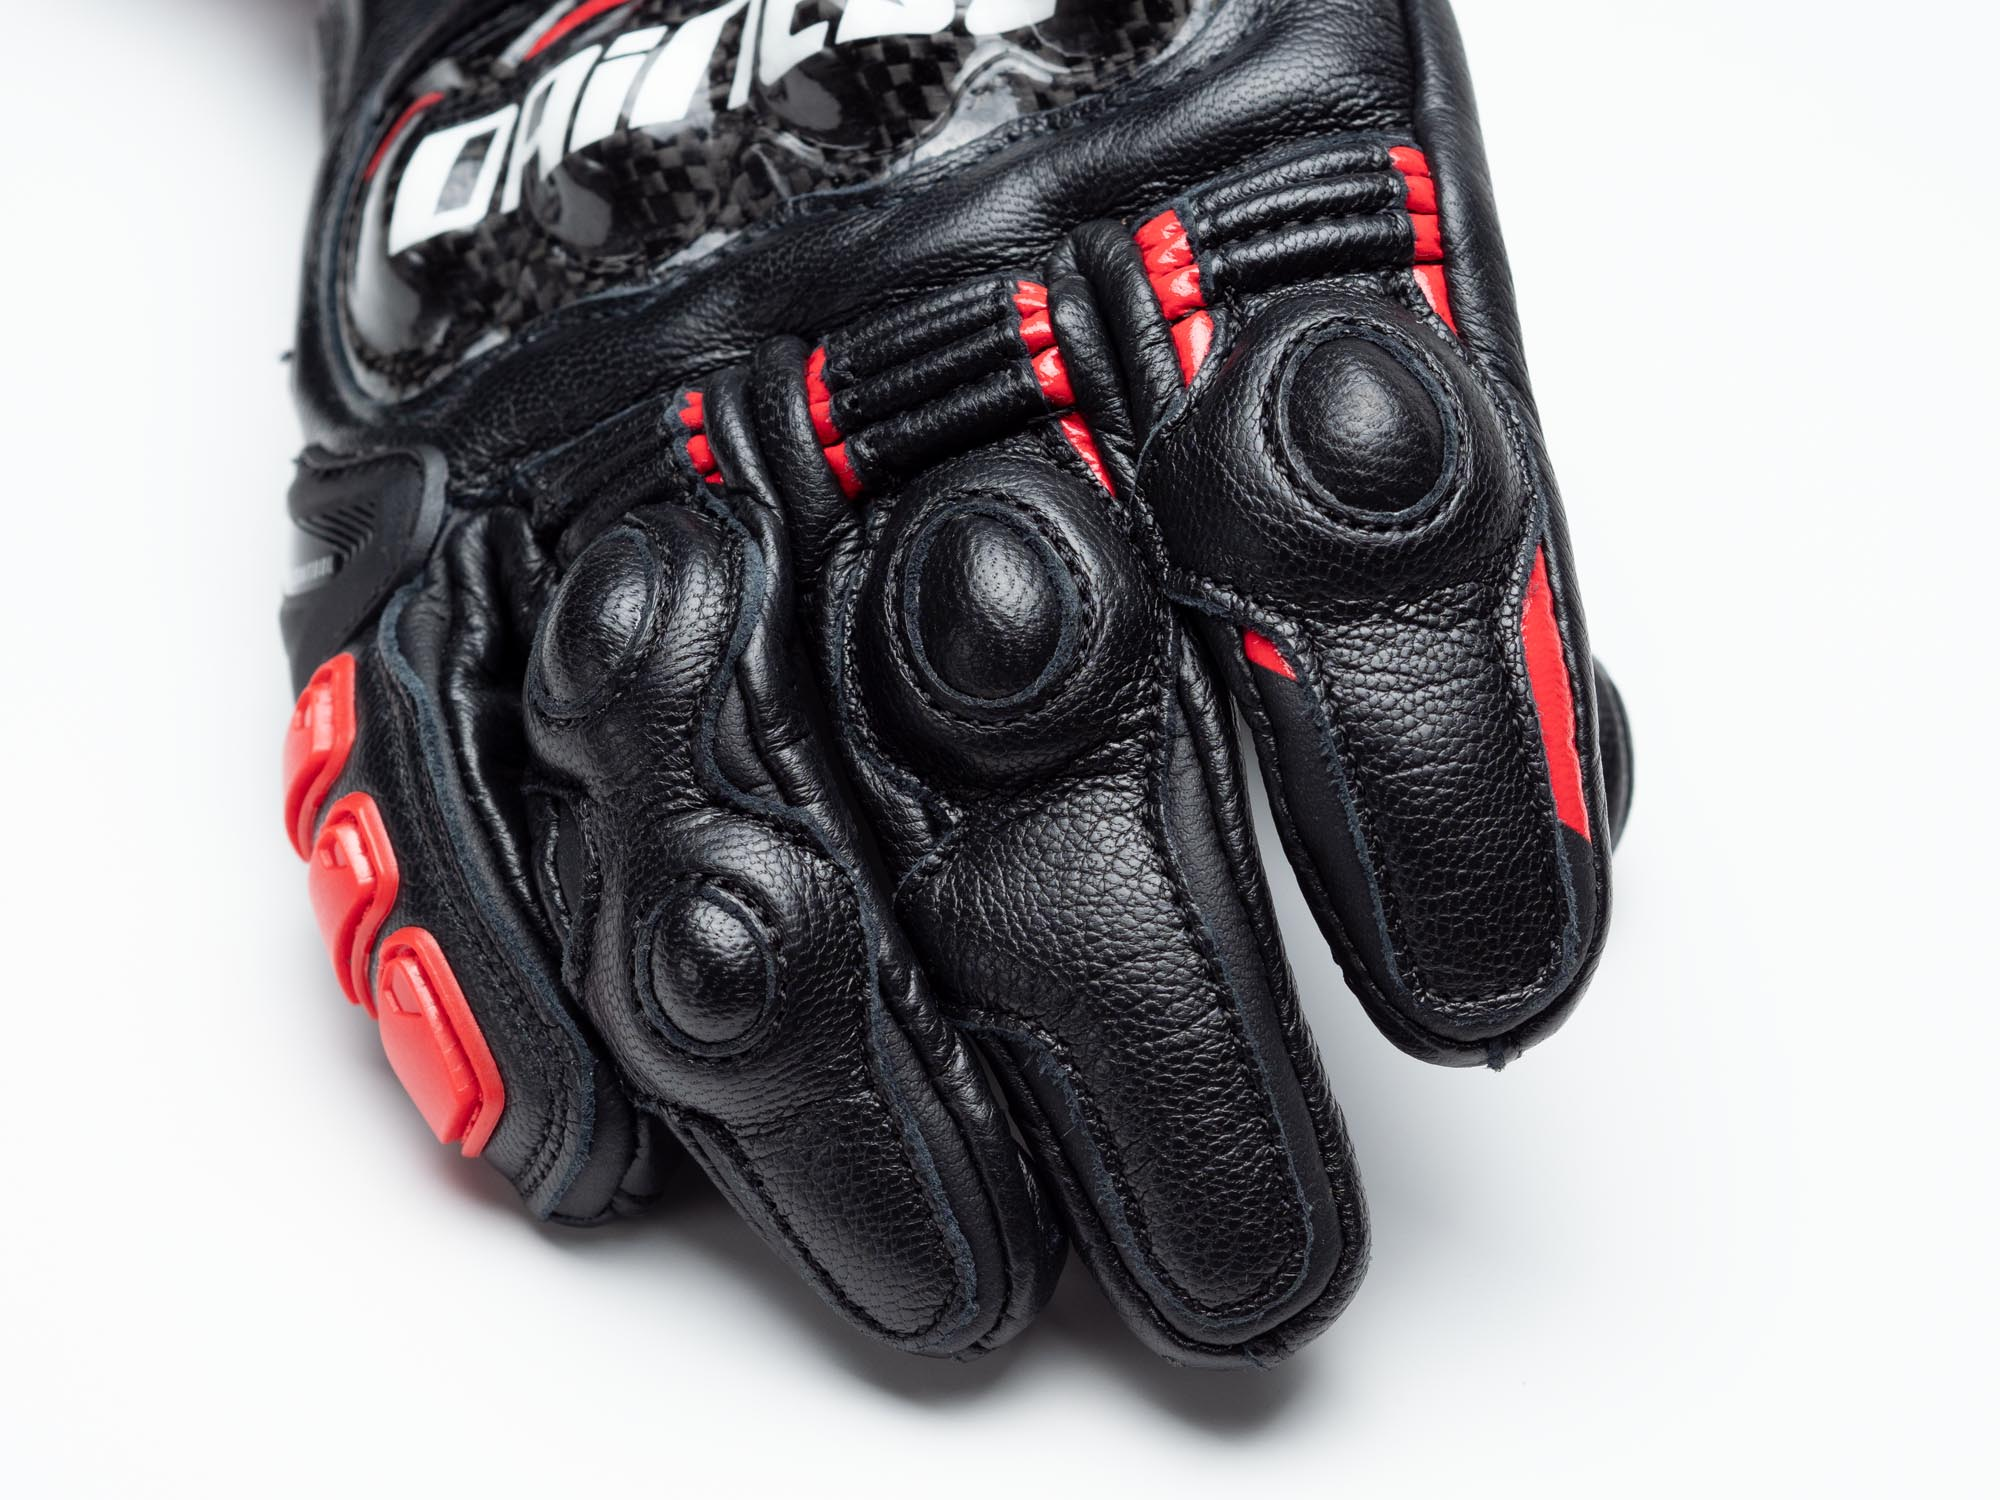 Dainese D1 Druid Long Gloves closeup of finger knuckle material